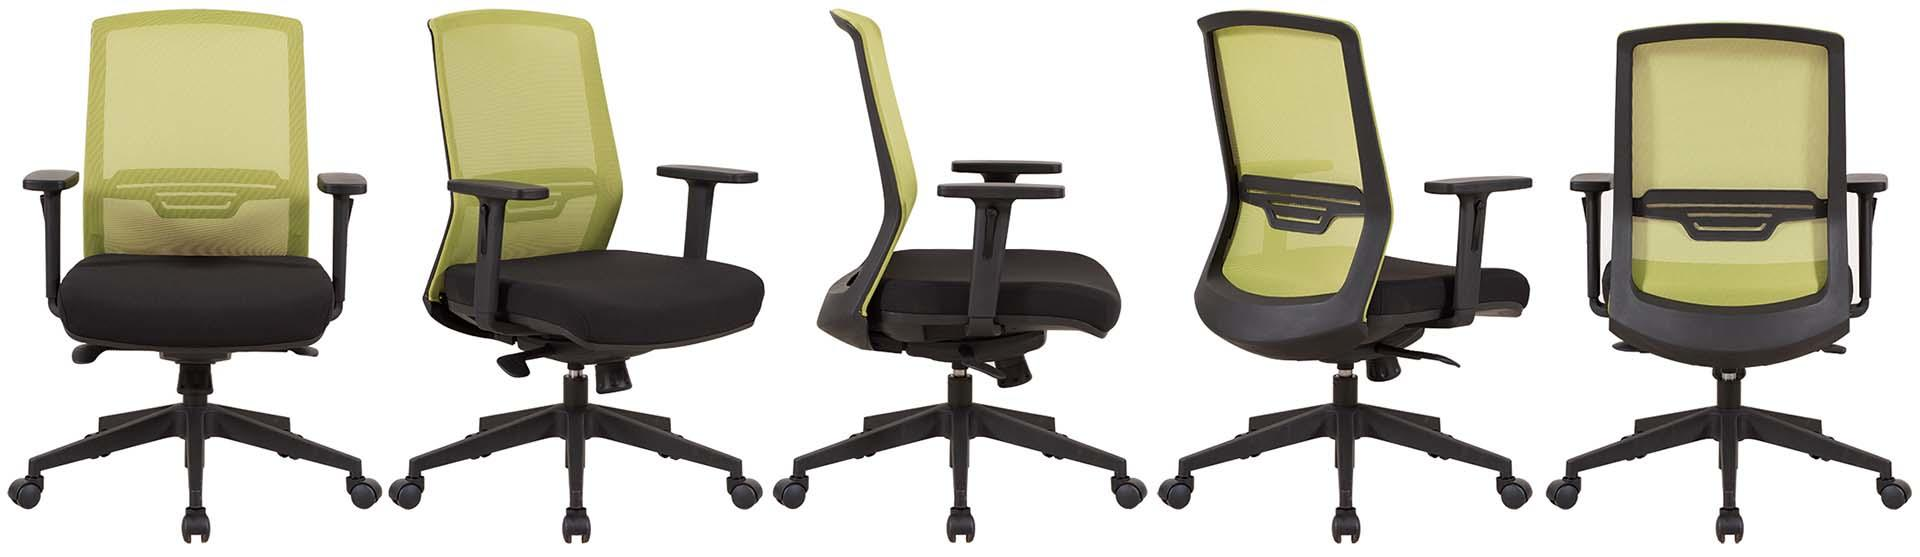 Tevson chairs low-back office chair at discount for room-1